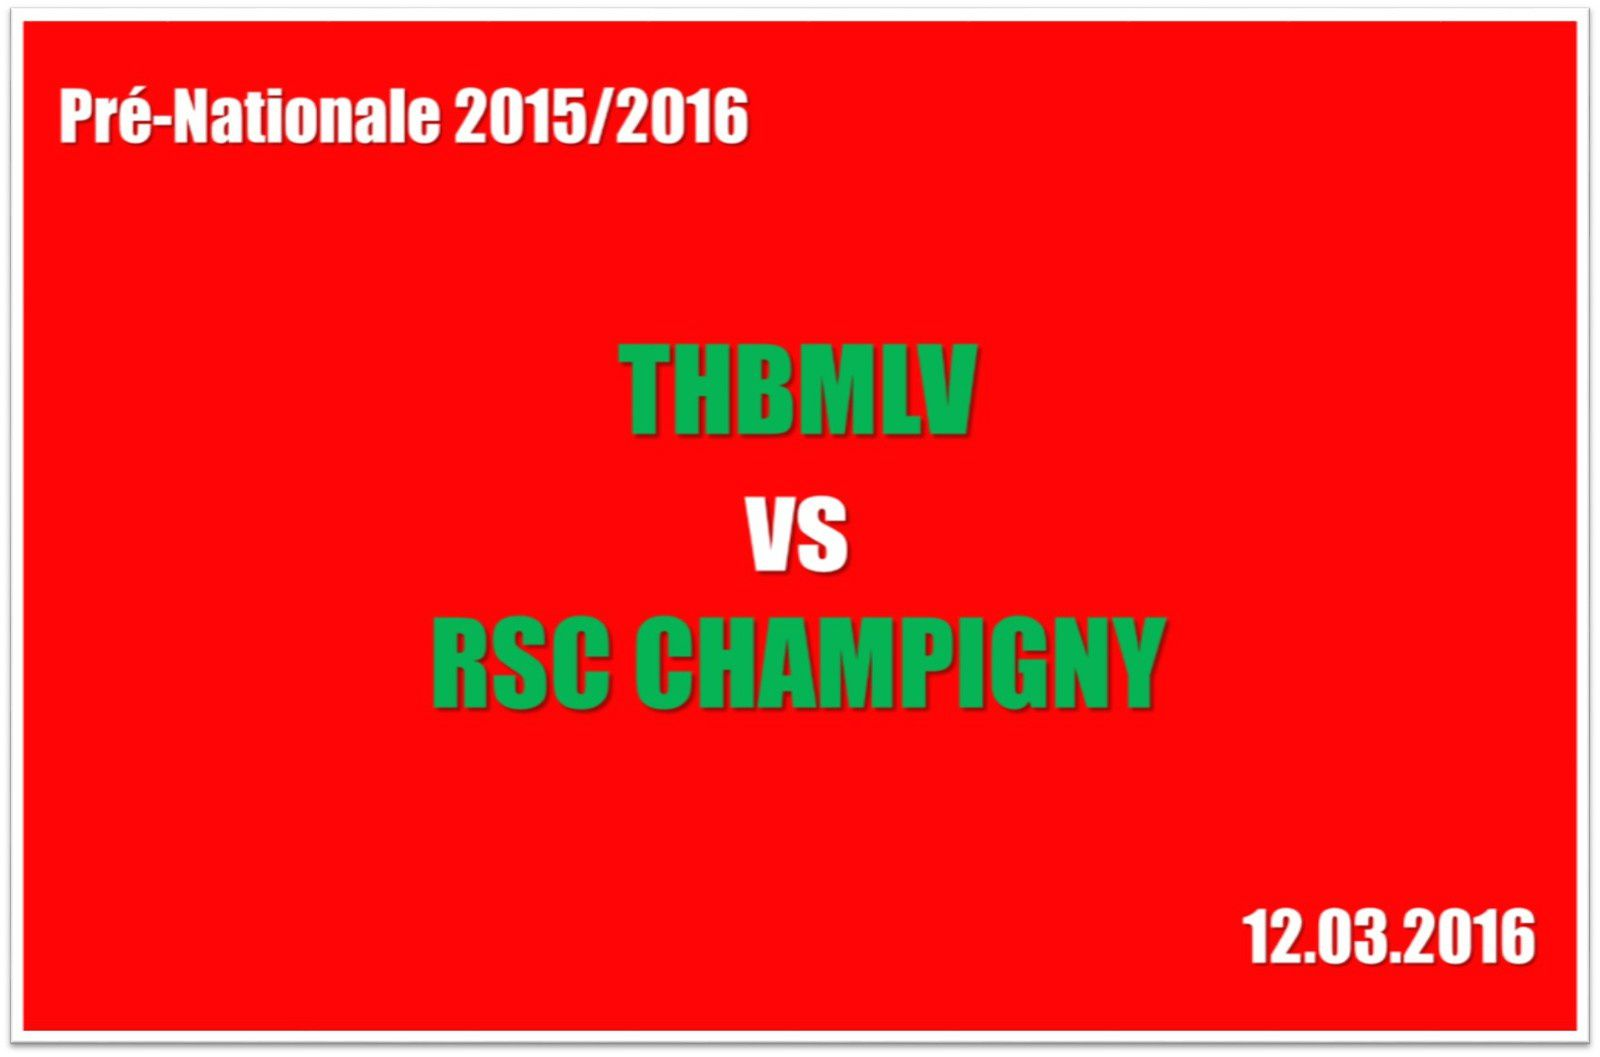 THBMLV 2 vs RSC CHAMPIGNY (Pré-Nationale) 12.03.2016